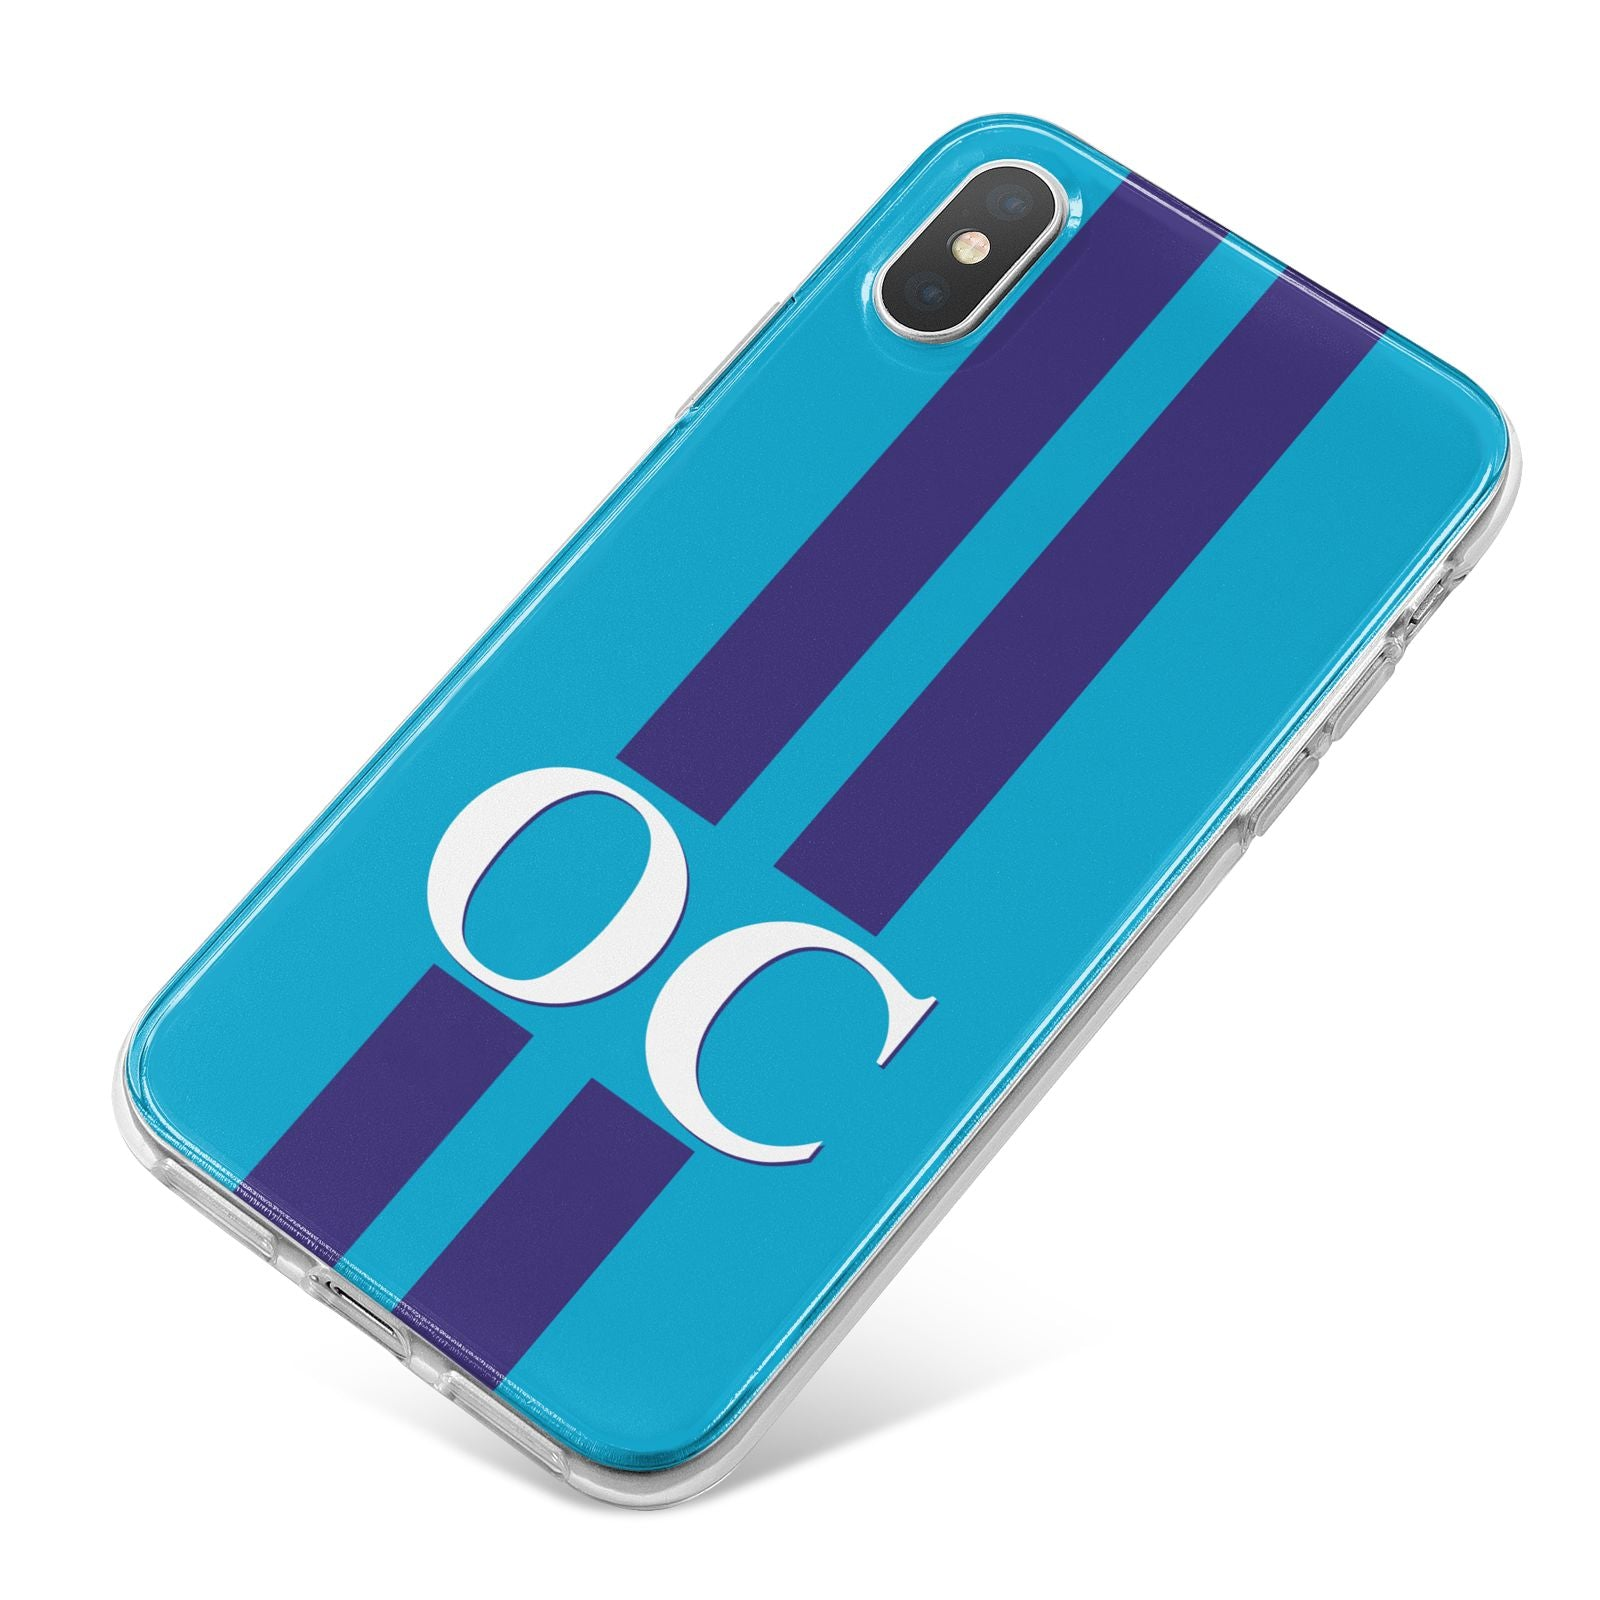 Turquoise Personalised iPhone X Bumper Case on Silver iPhone